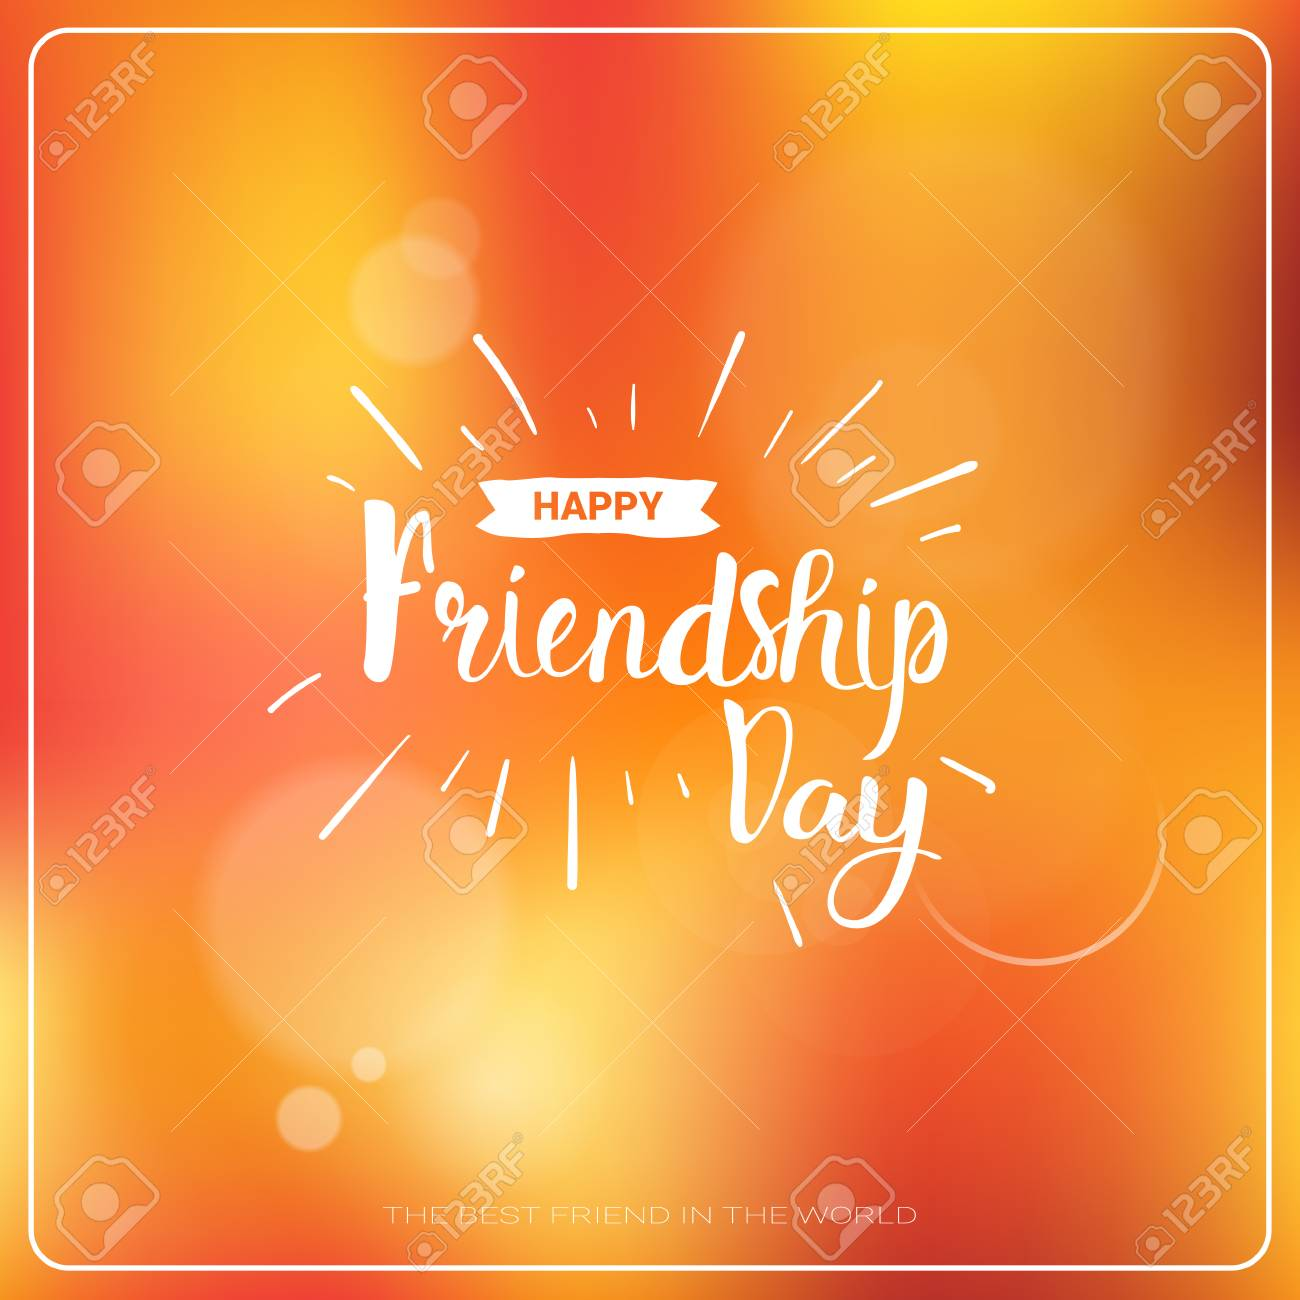 Happy Friendship Day Greeting Card Friends Holiday Banner Flat